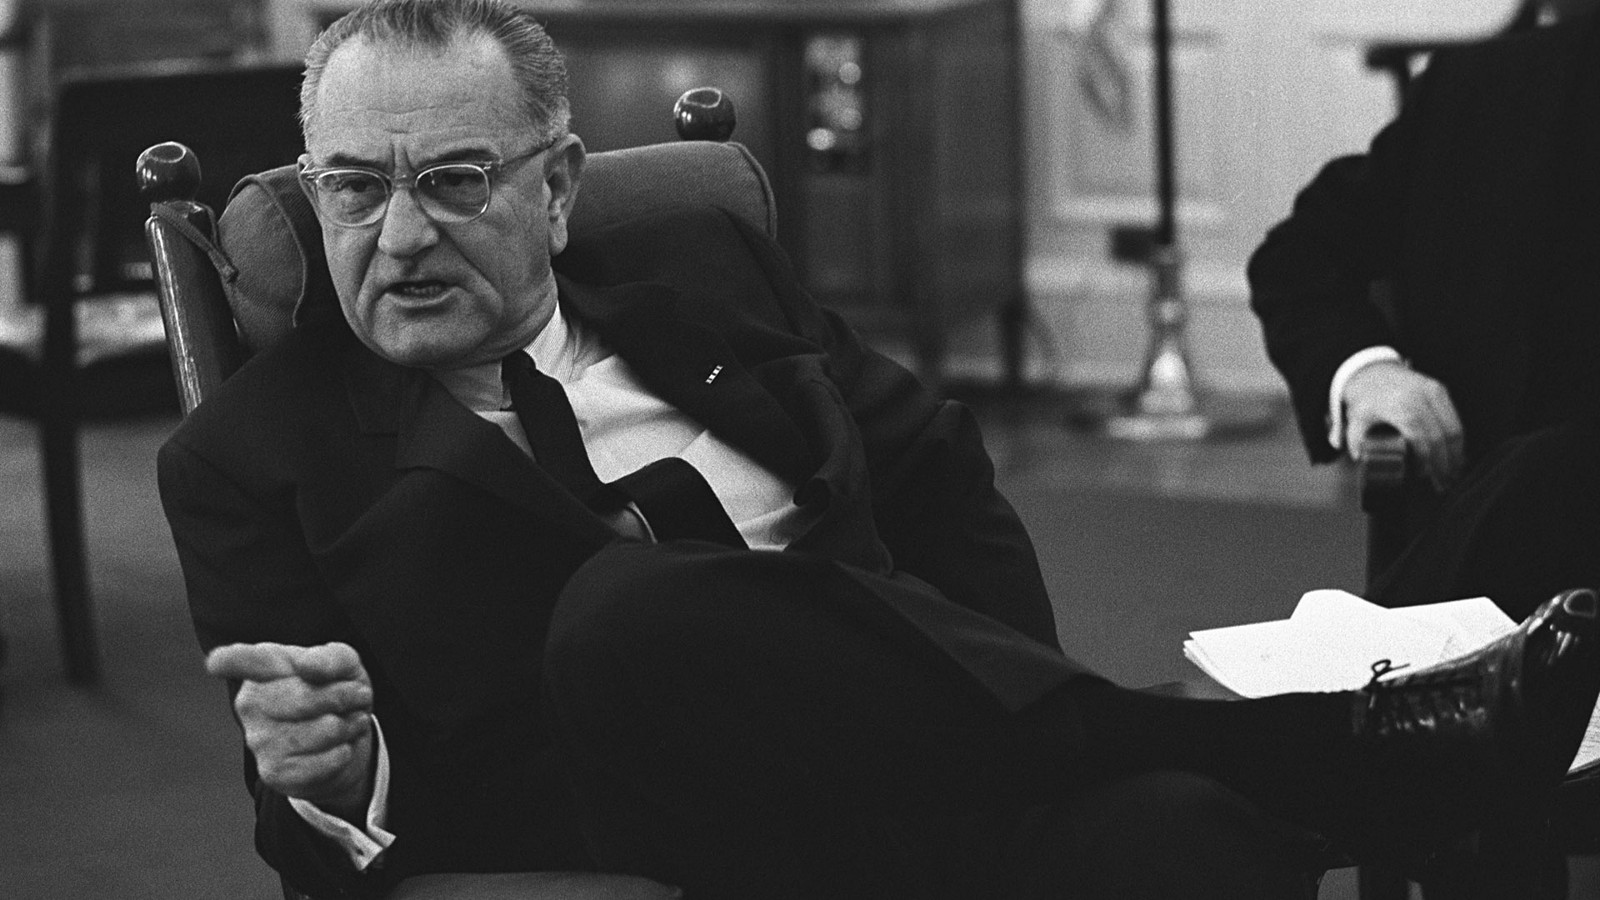 lyndon b johnson research paper Lyndon b johnson's goal of containing the spread of communism from southeast asia influenced him to purposely miscommunicate information regarding the gulf of tonkin incident in order to convince congress to grant him the power to join the war in vietnam.